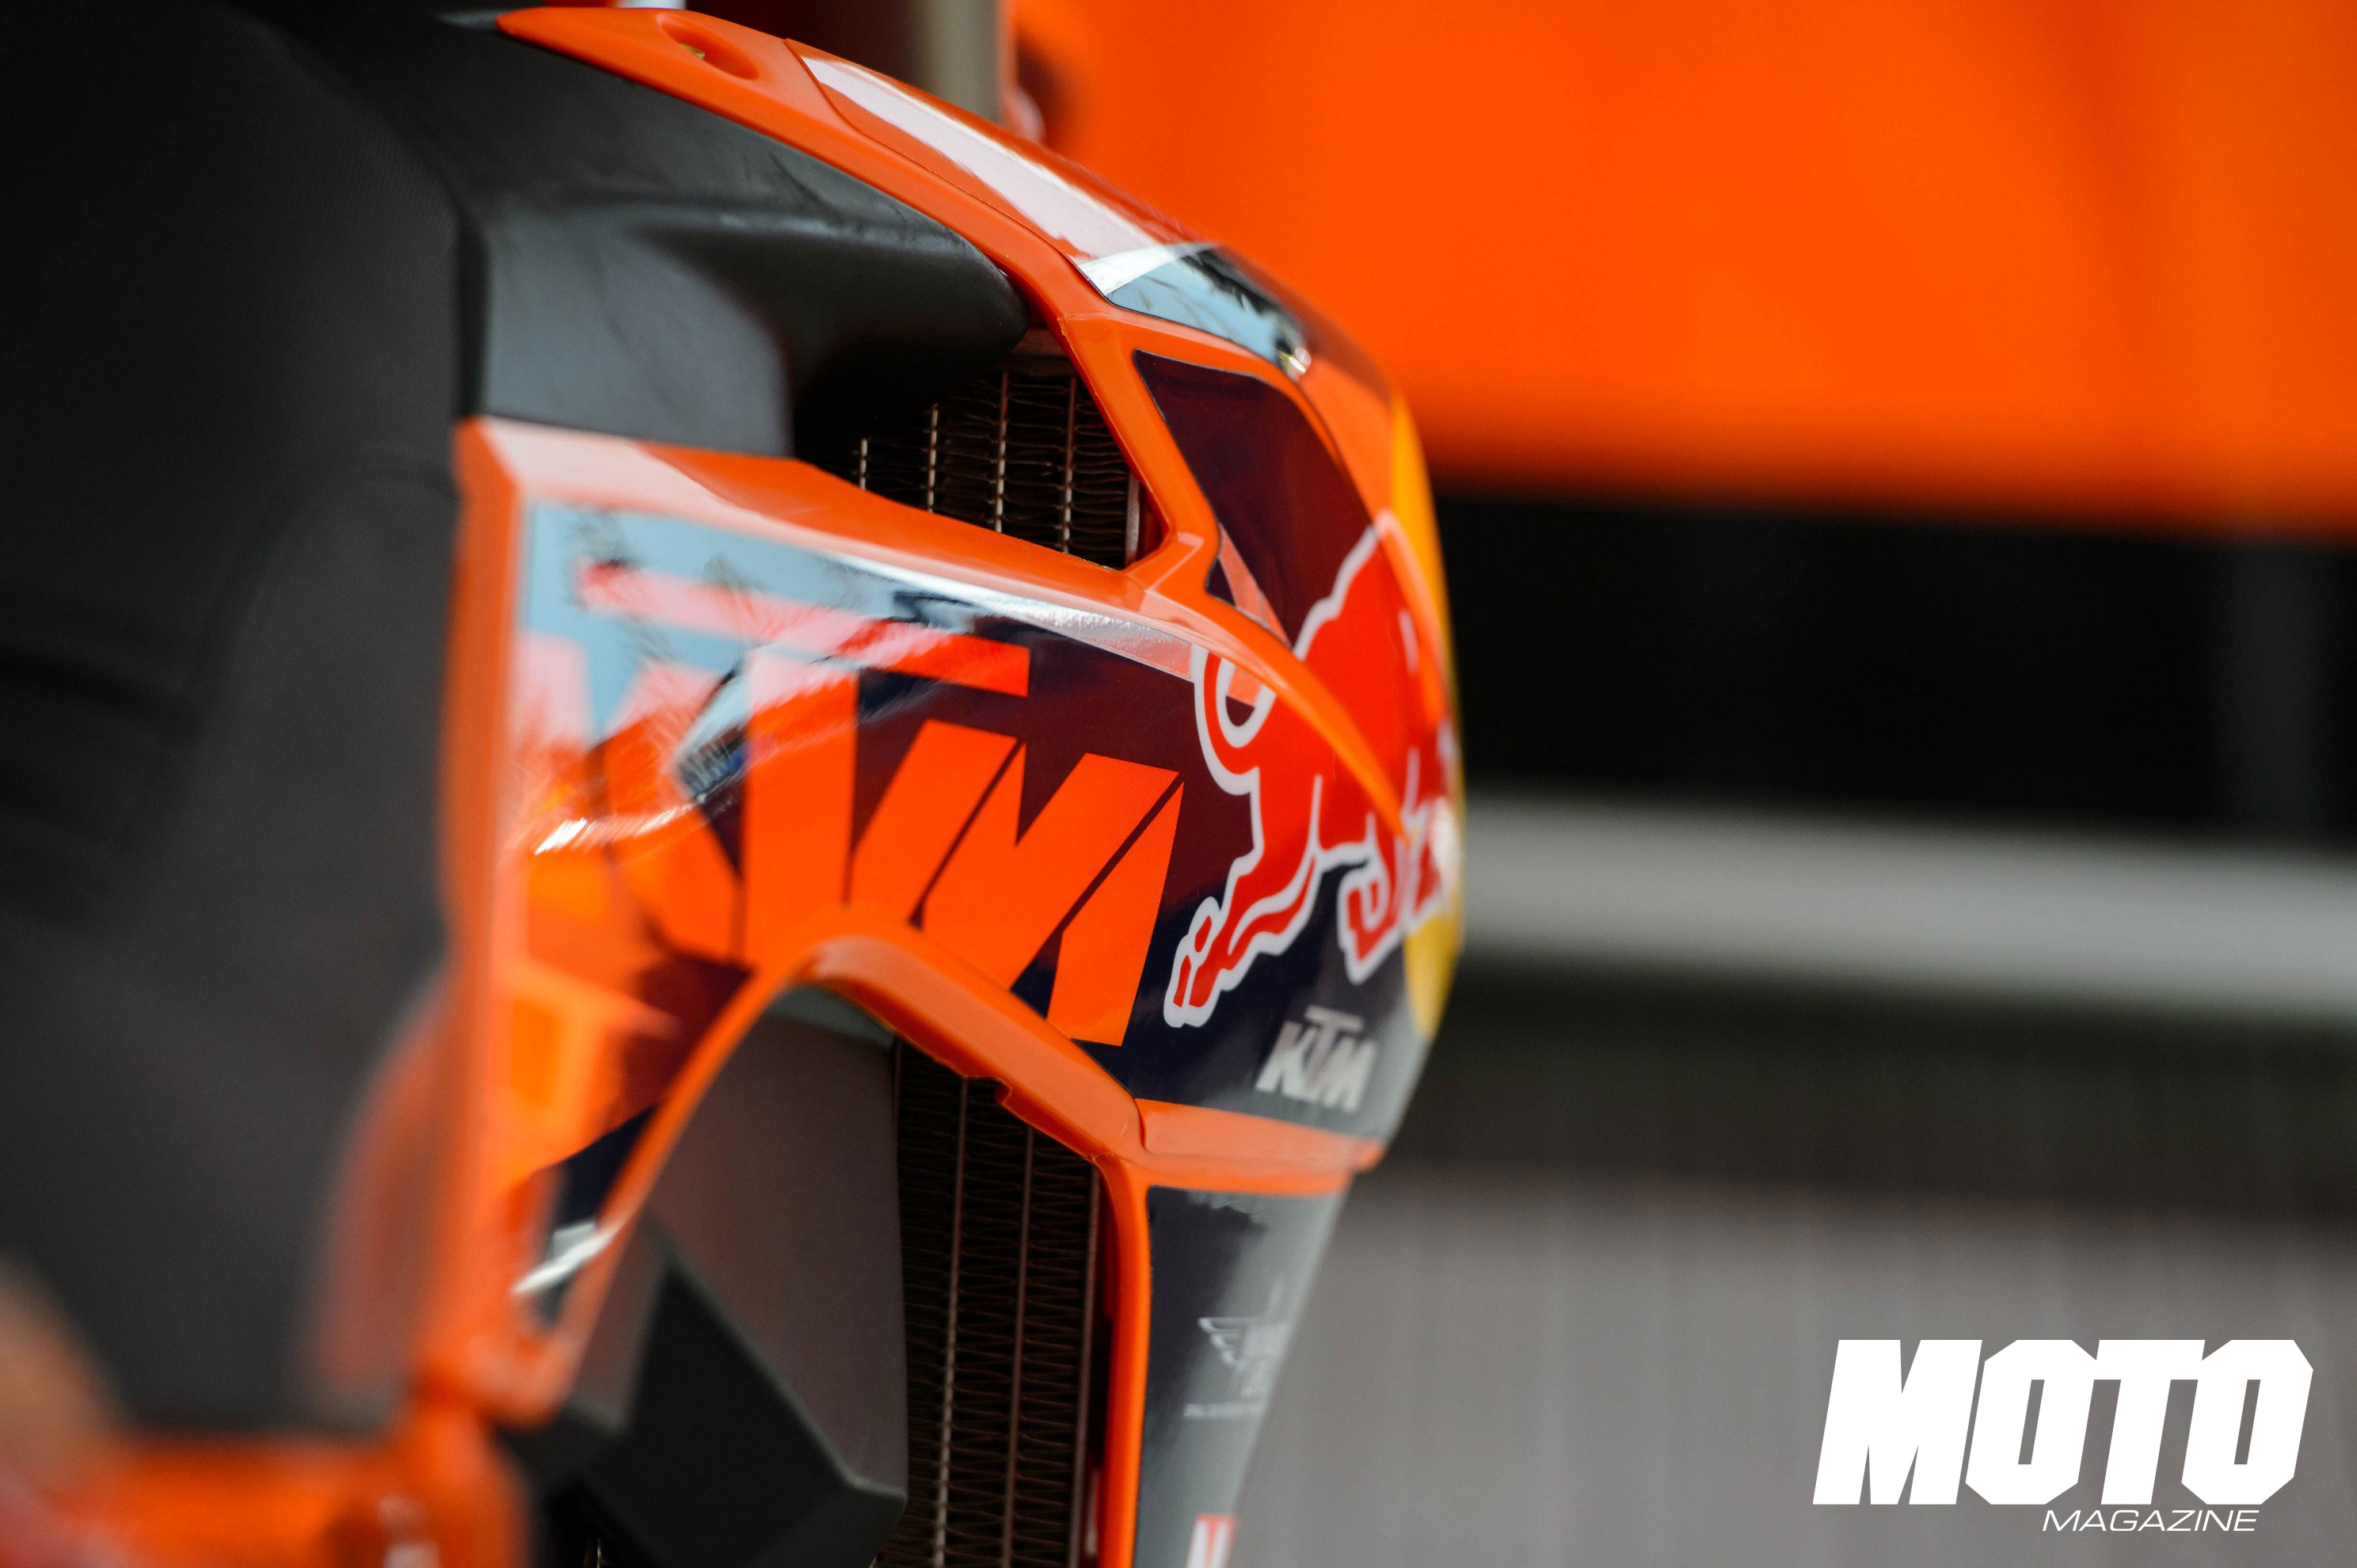 ktm racing wallpaper wallpapersafari